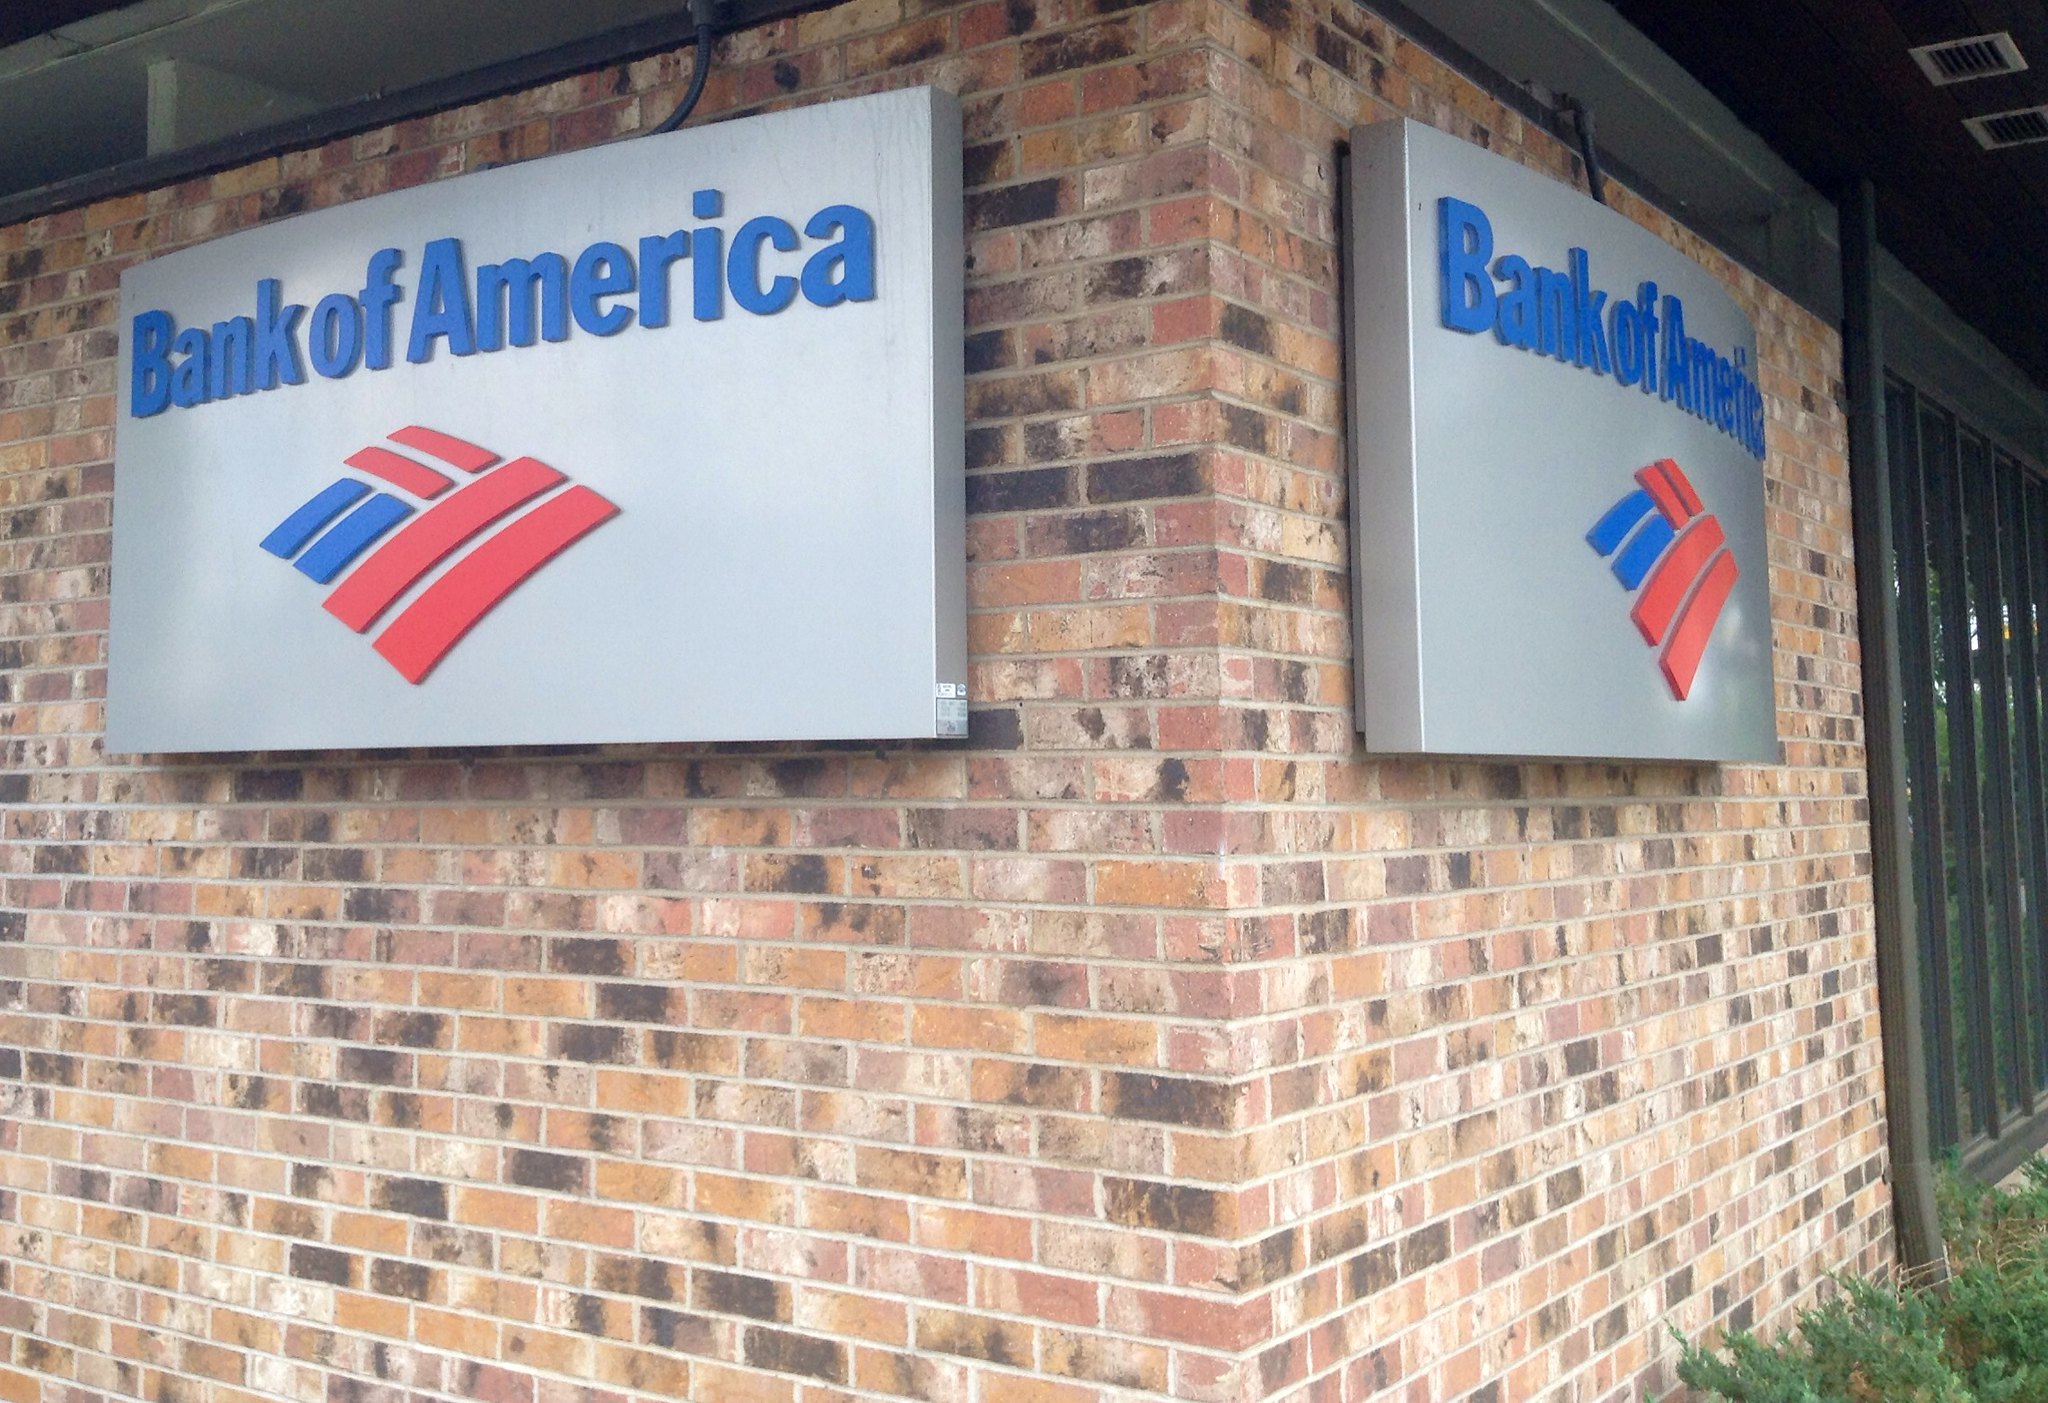 Bank of America branches